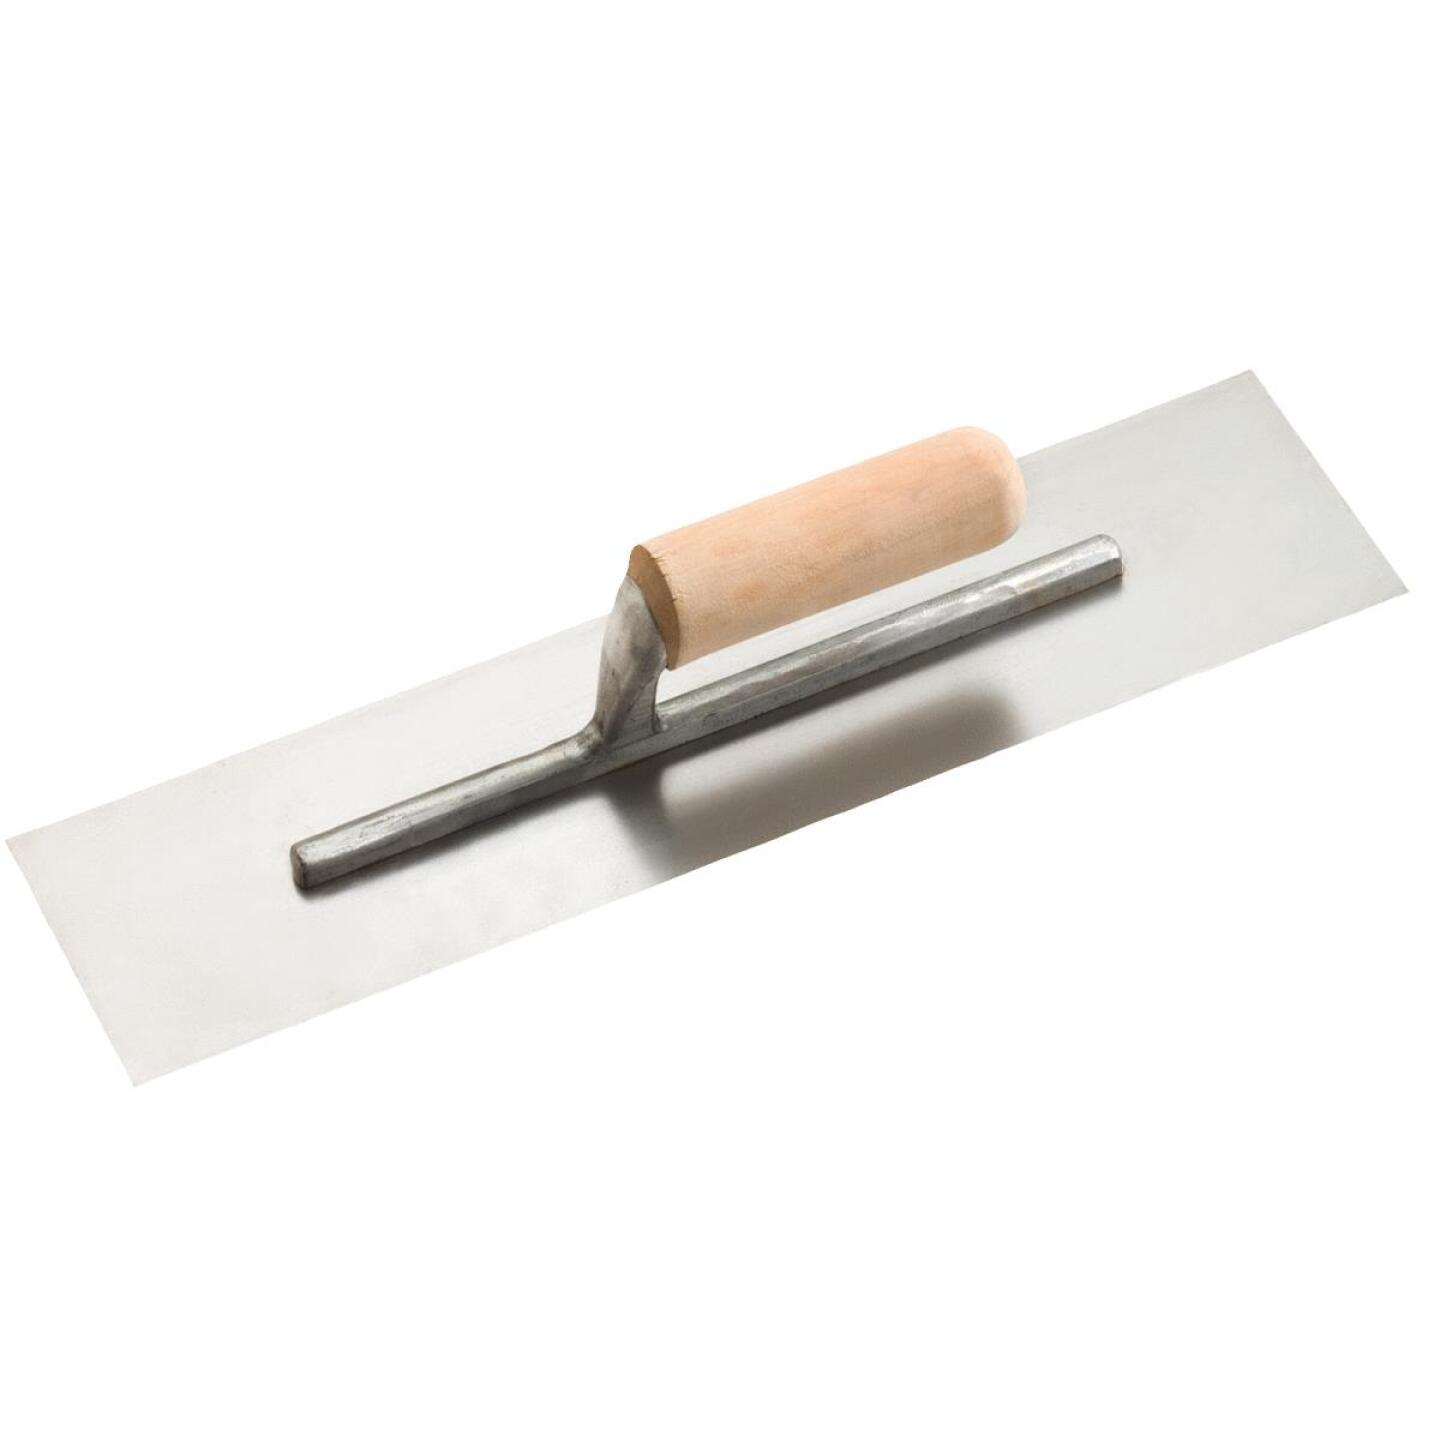 Do it 4 In. x 16 In. Finishing Trowel with Basswood Handle Image 1